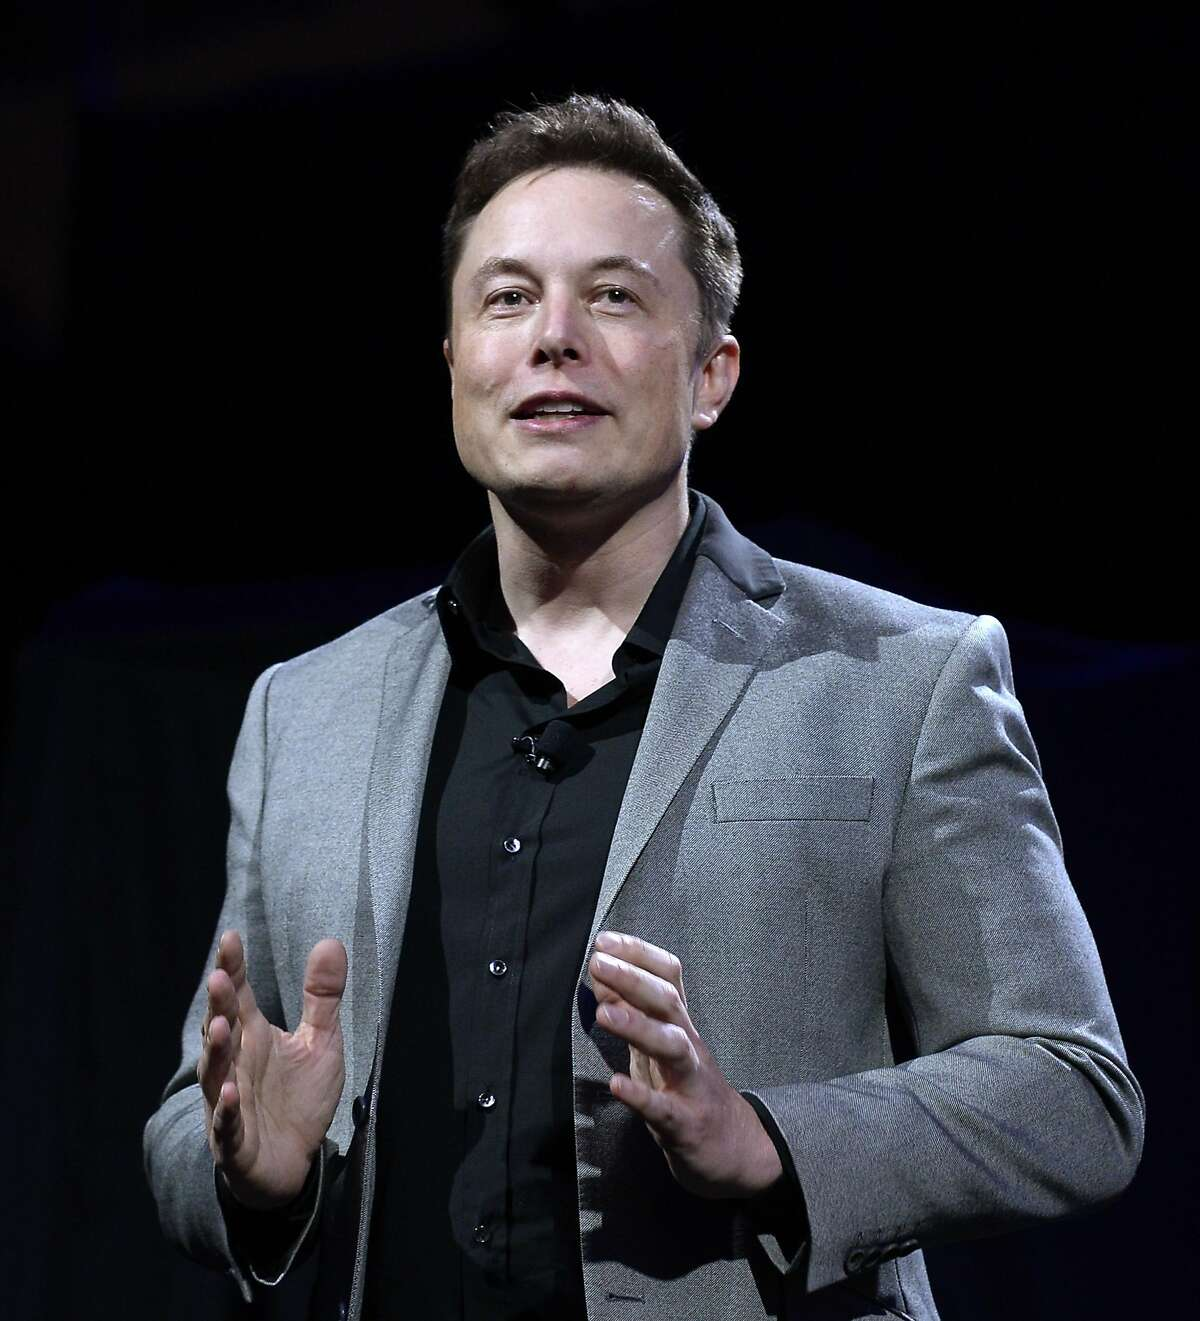 Elon Musk, CEO of Tesla, unveils suit of batteries for homes, businesses, and utilities at Tesla Design Studio April 30, 2015 in Hawthorne, California.